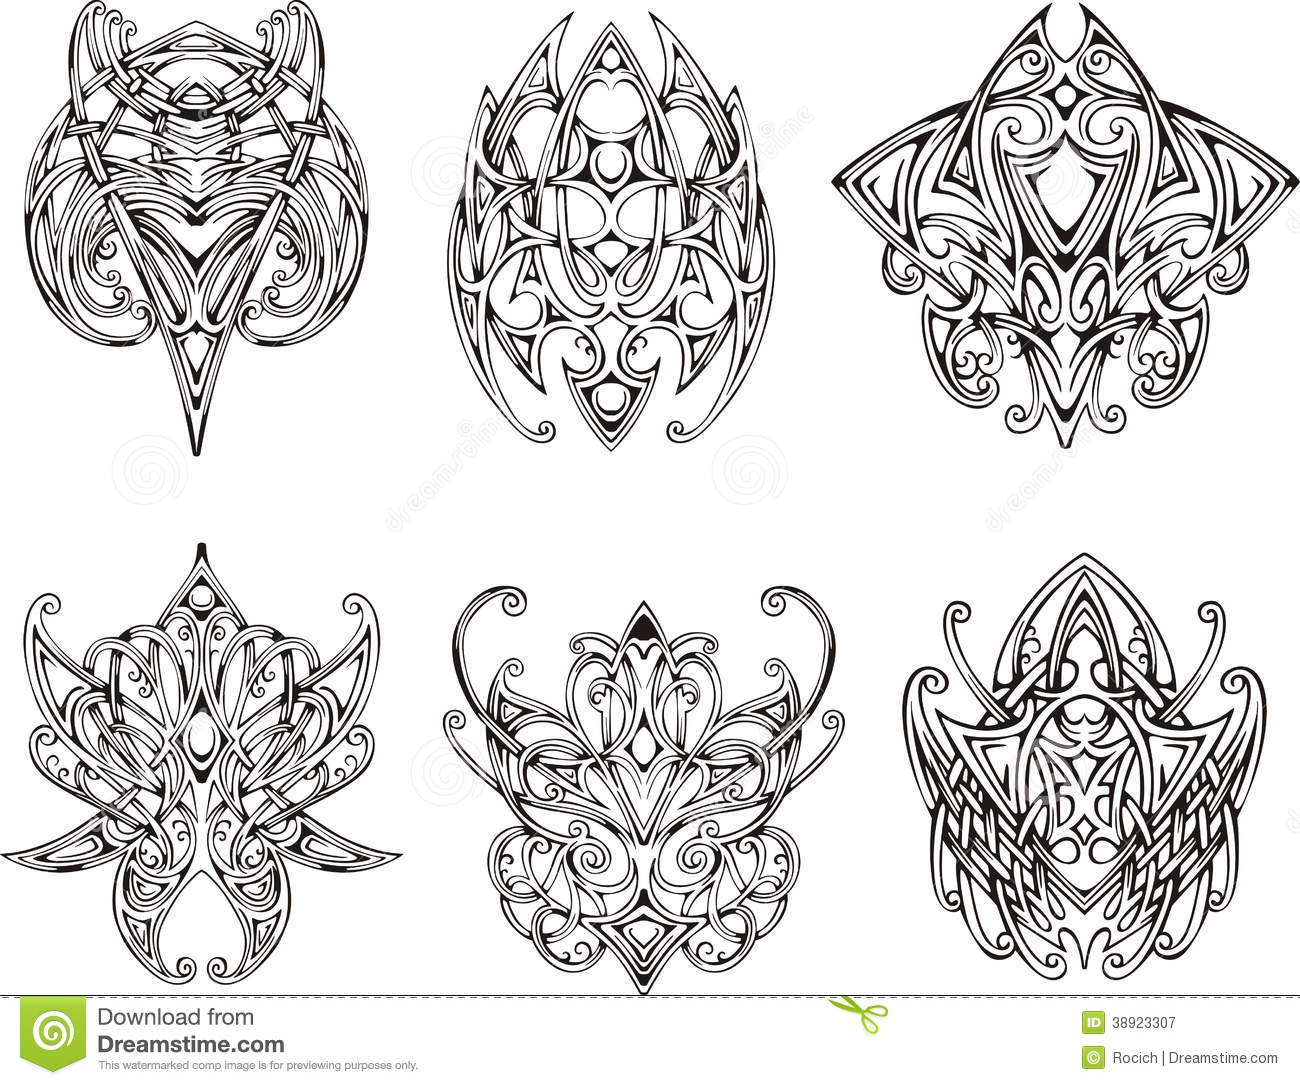 Symetrical Designs symmetrical knot tattoo designs stock illustration - image: 38923459